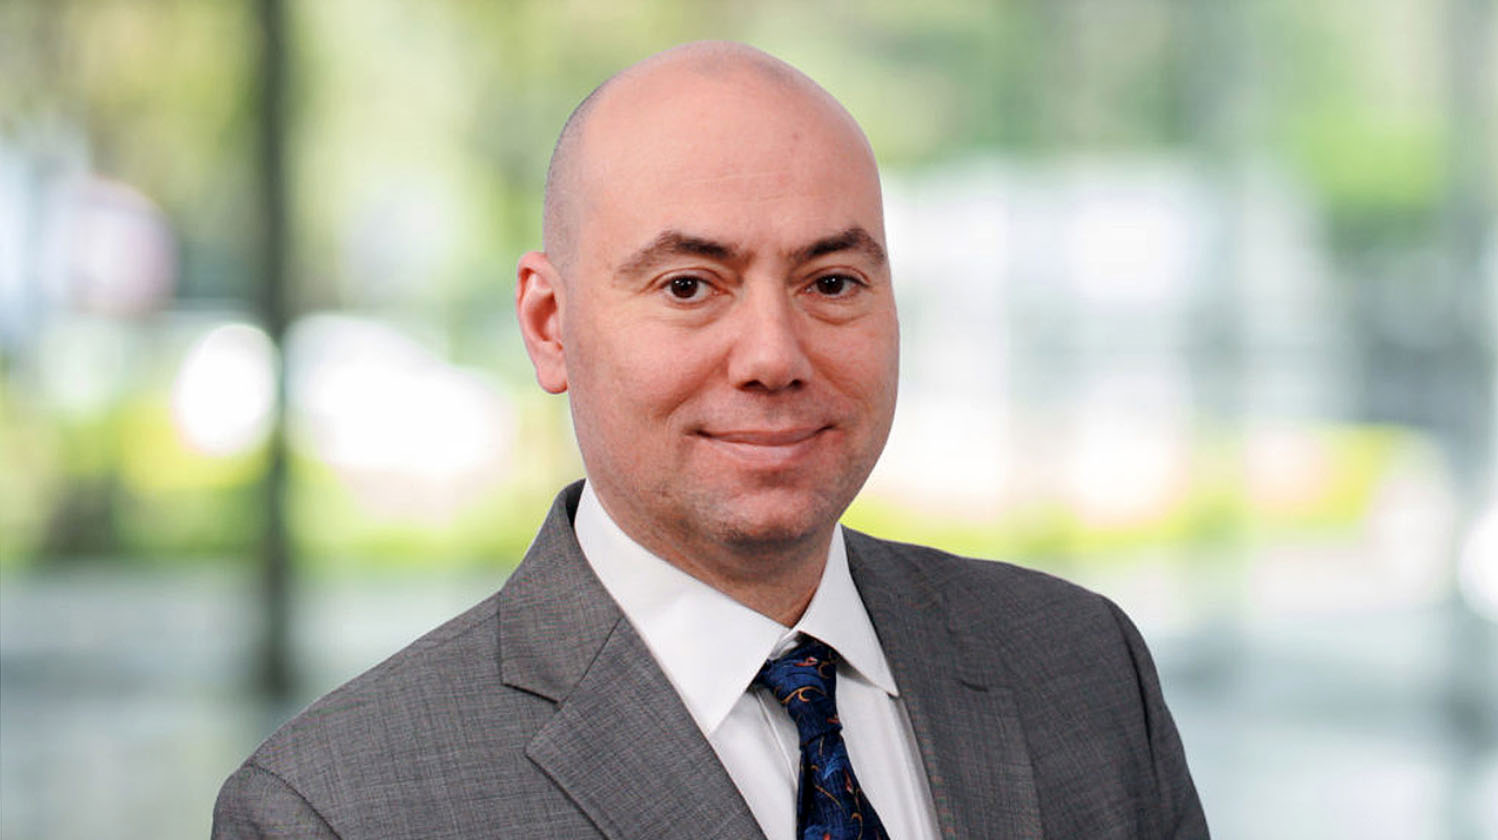 Jason Seidl, Cowen and Co. Managing Director and Railway Age Wall Street Contributing Editor